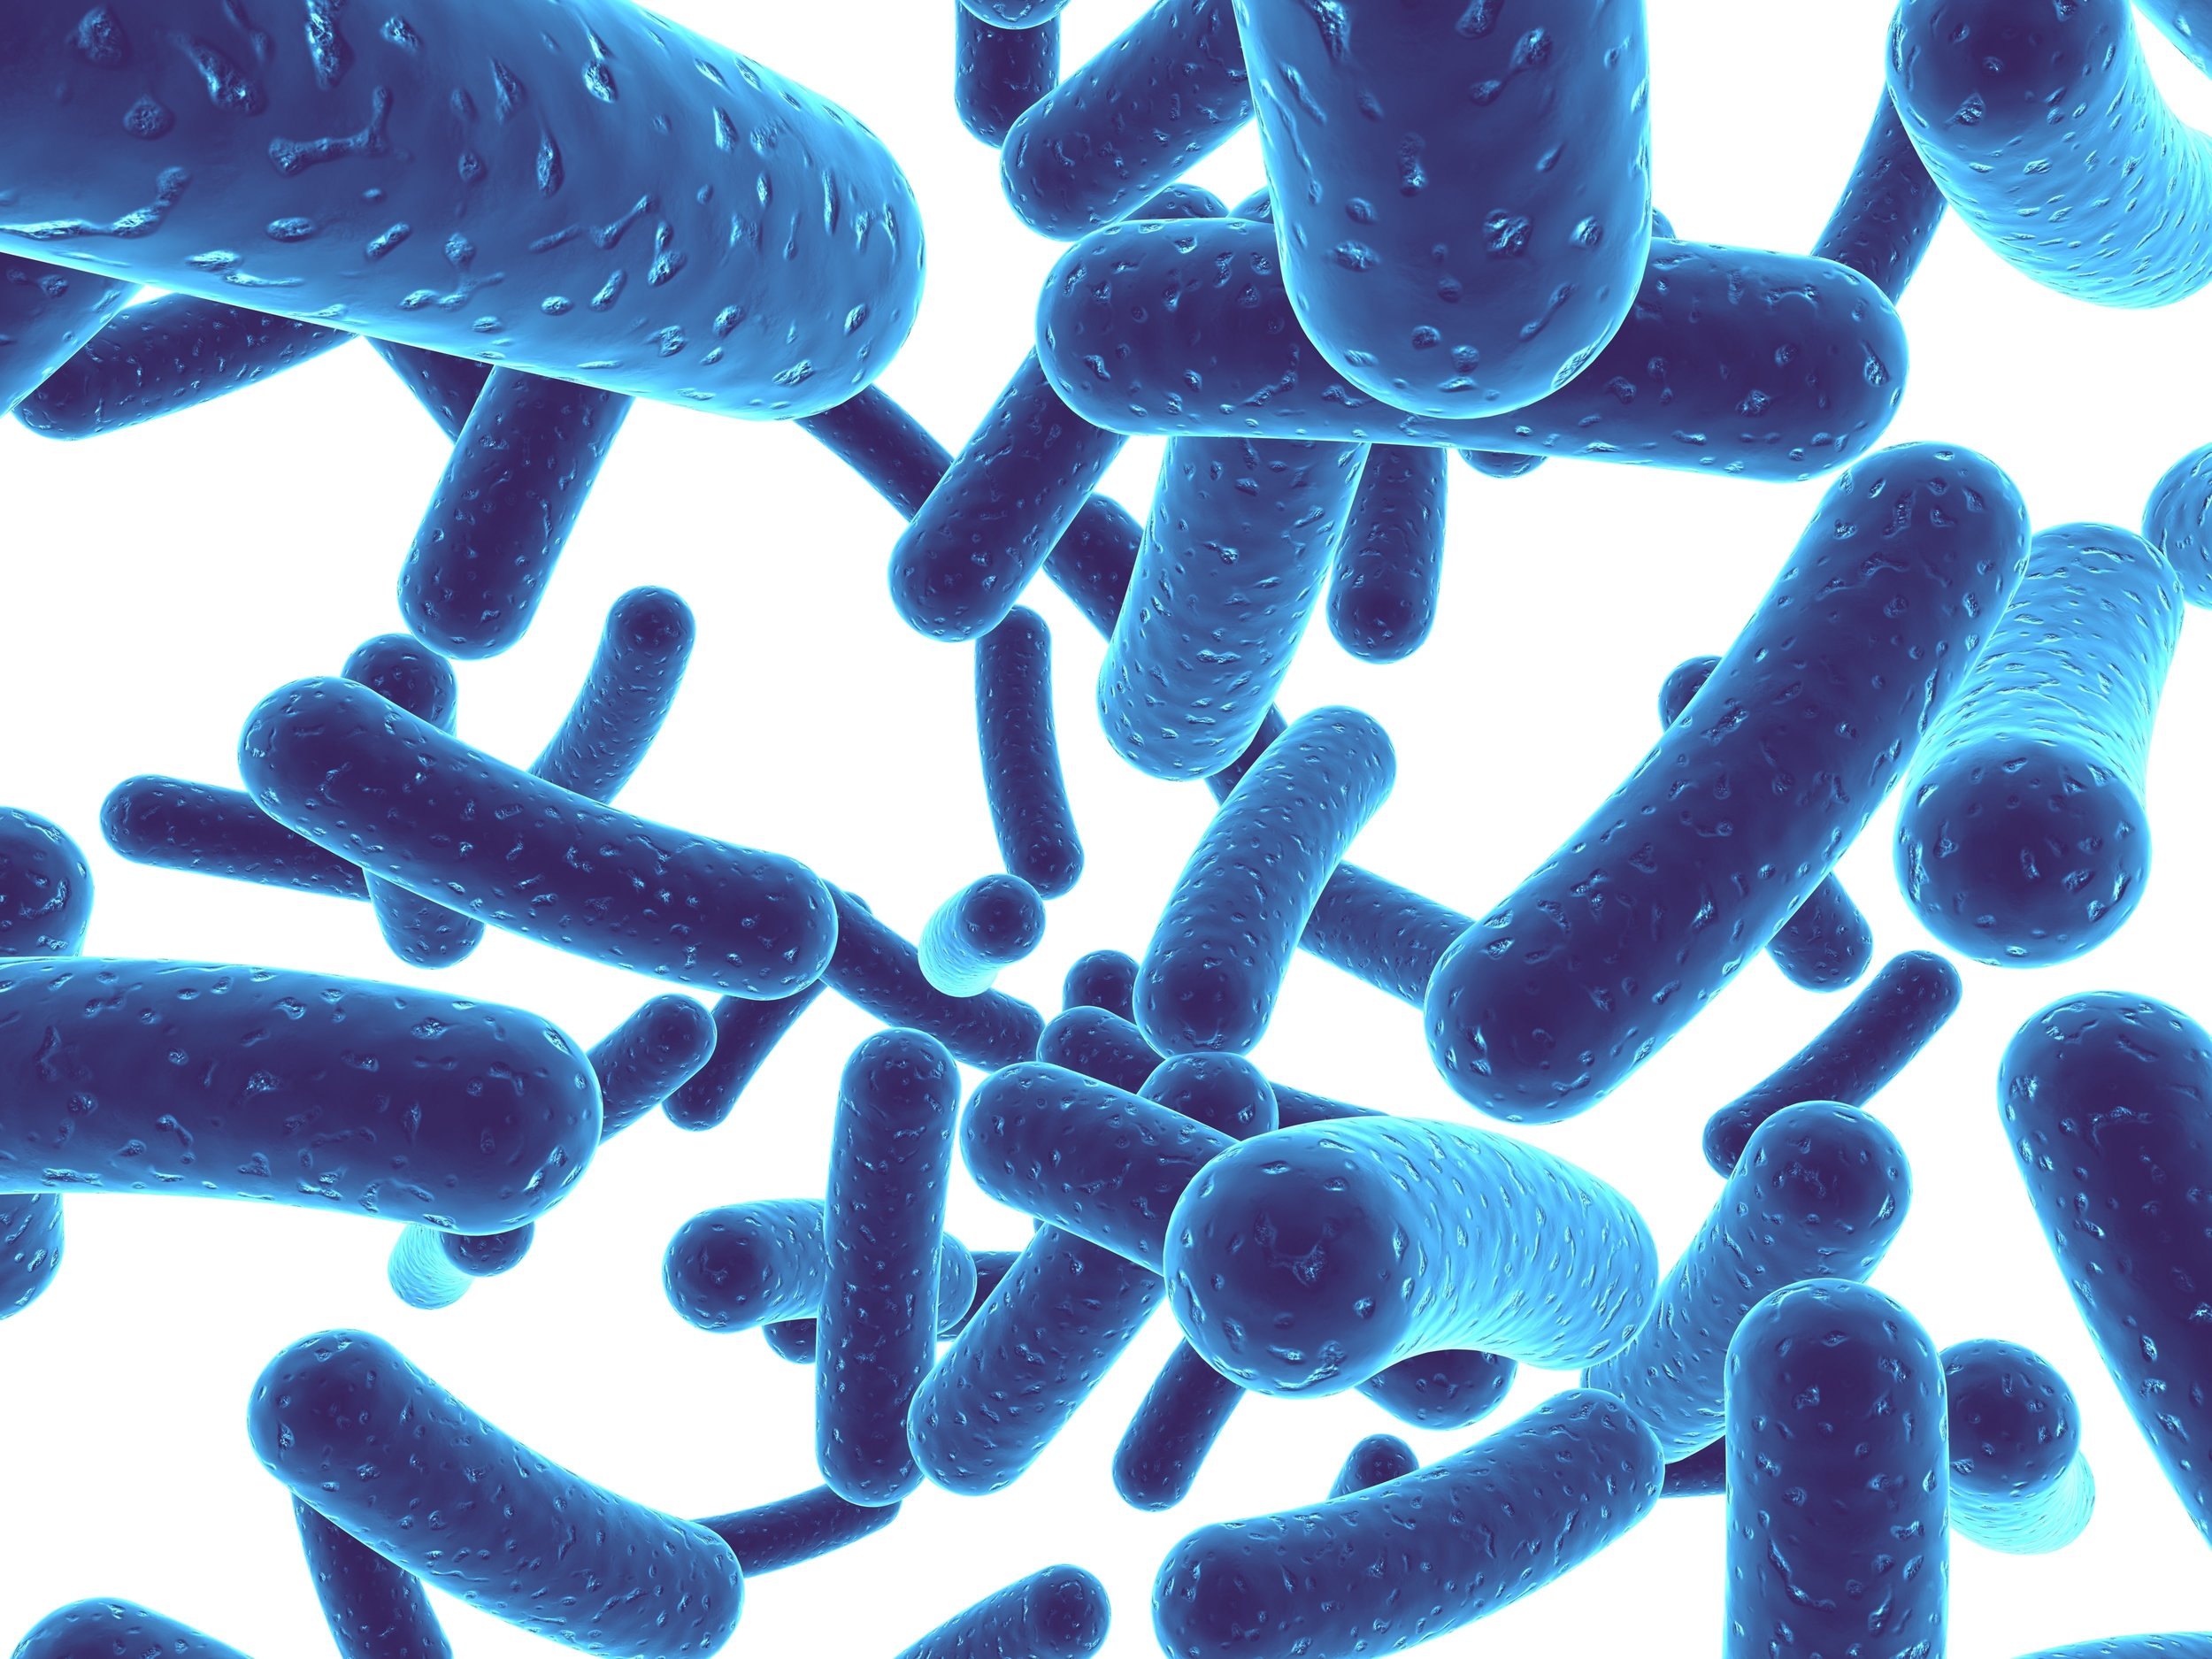 Bacteria. Probiotic bacteria supports the endocannabinoid system.